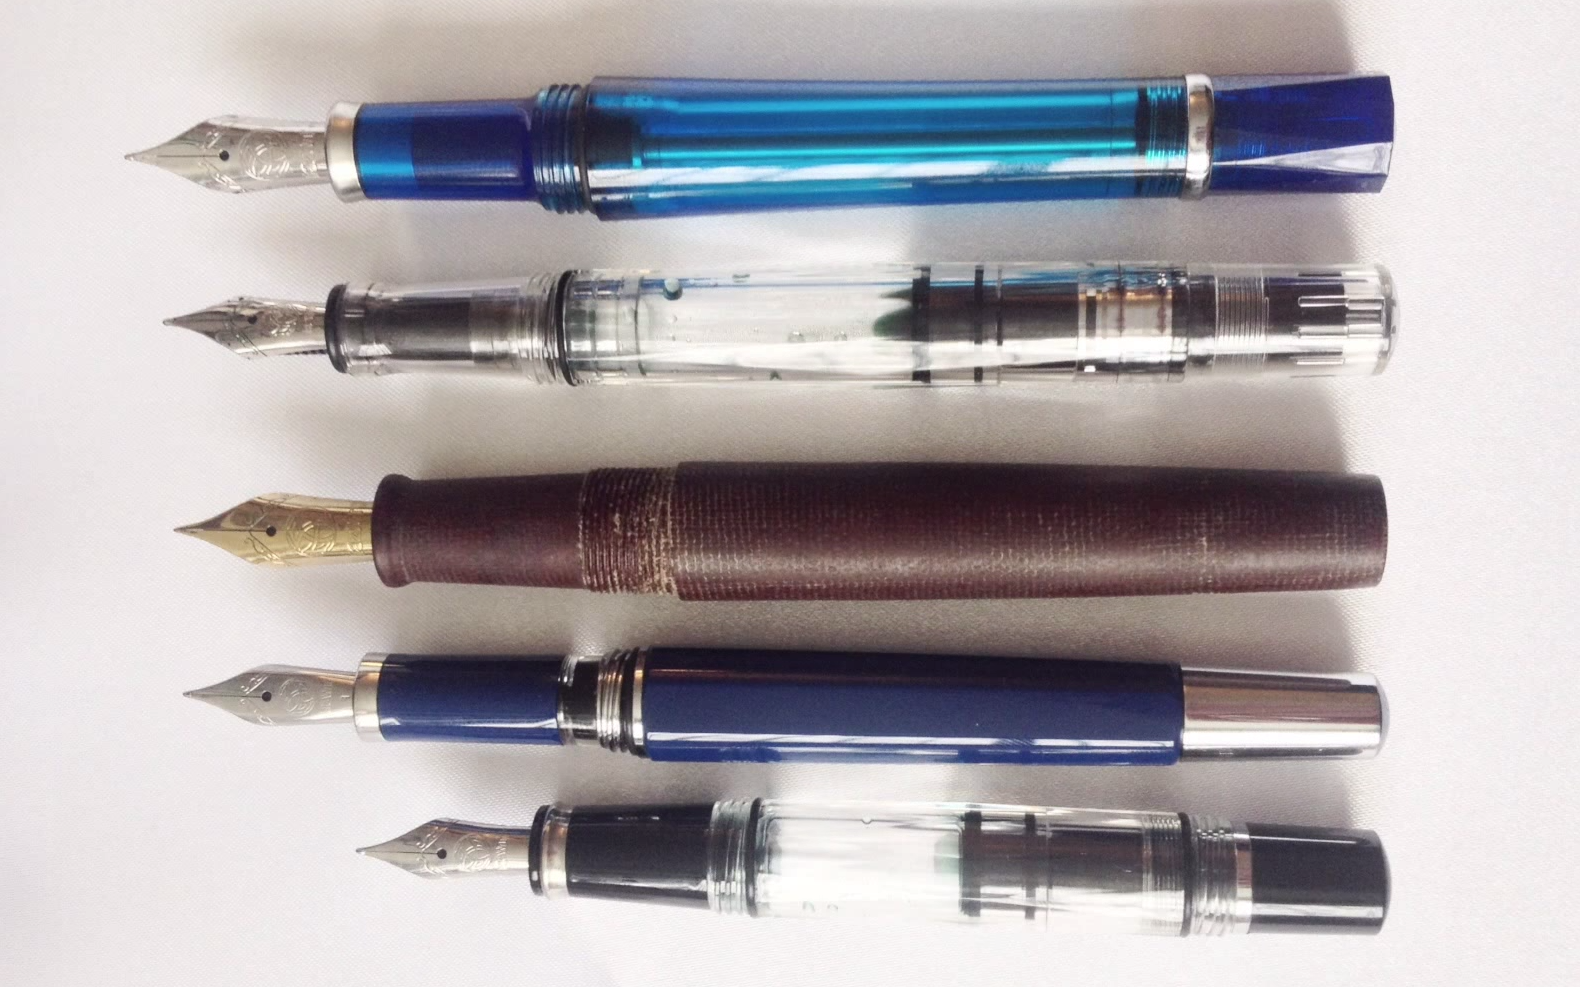 twsbi model comparison uncapped